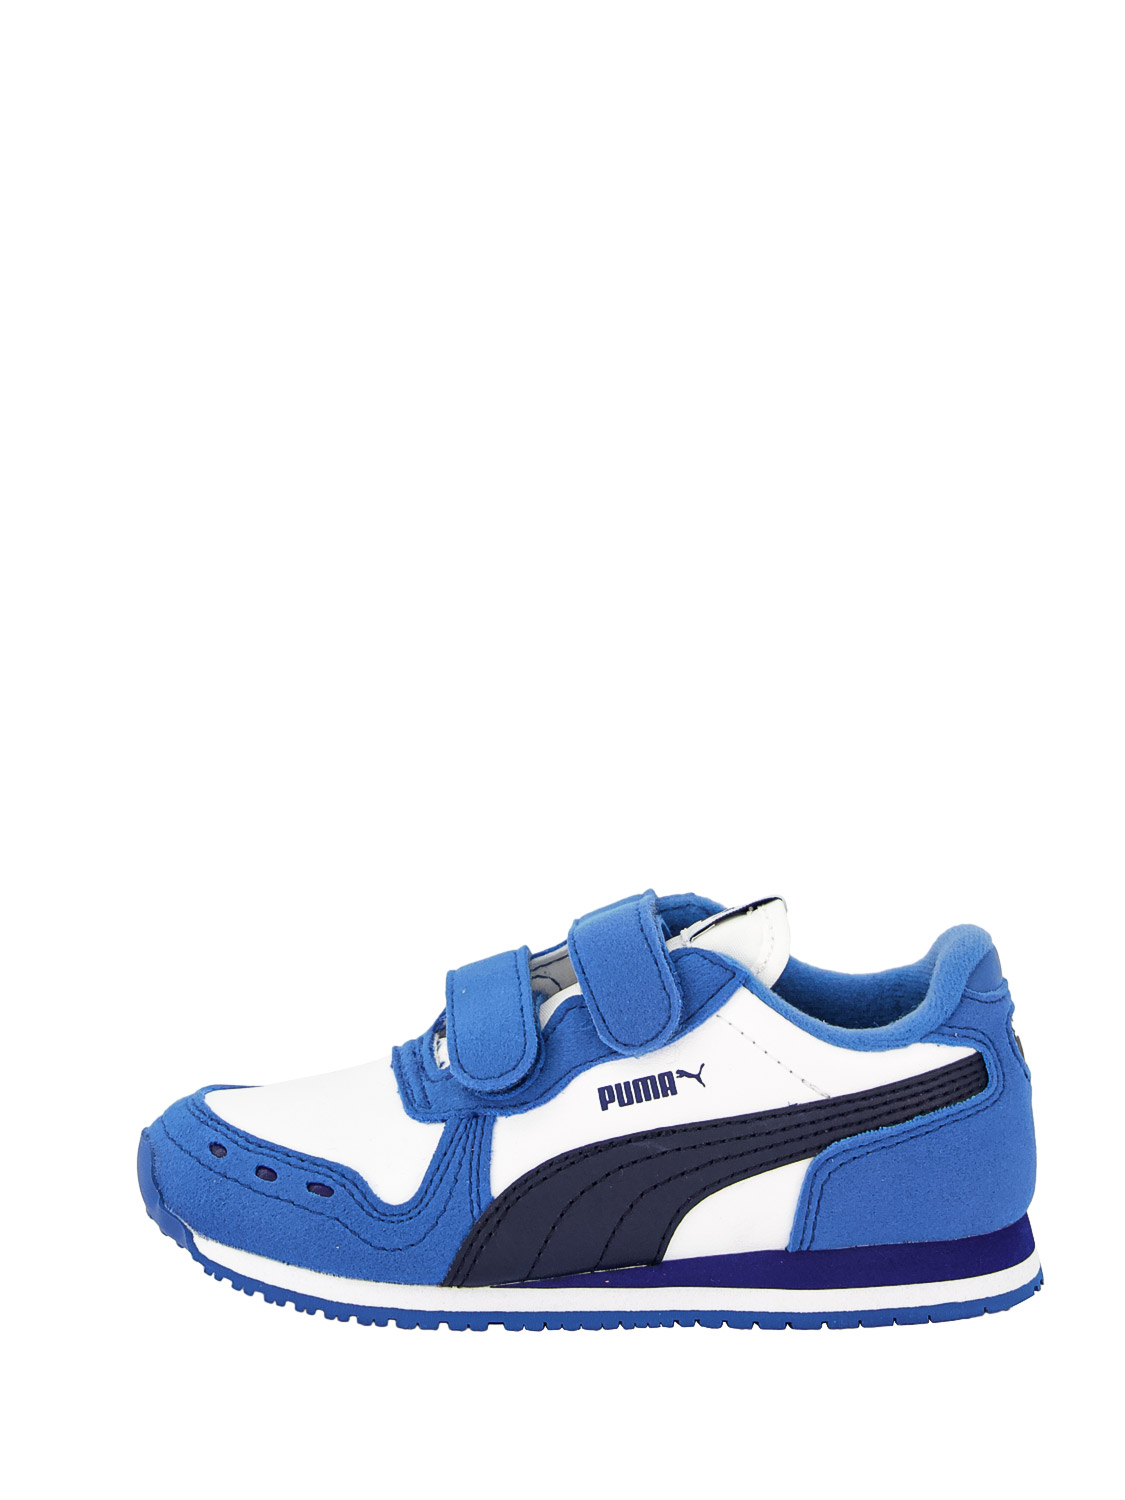 Puma Sneakers KIDS SNEAKERS CABANA RACER SL V INF FOR FOR BOYS AND FOR...